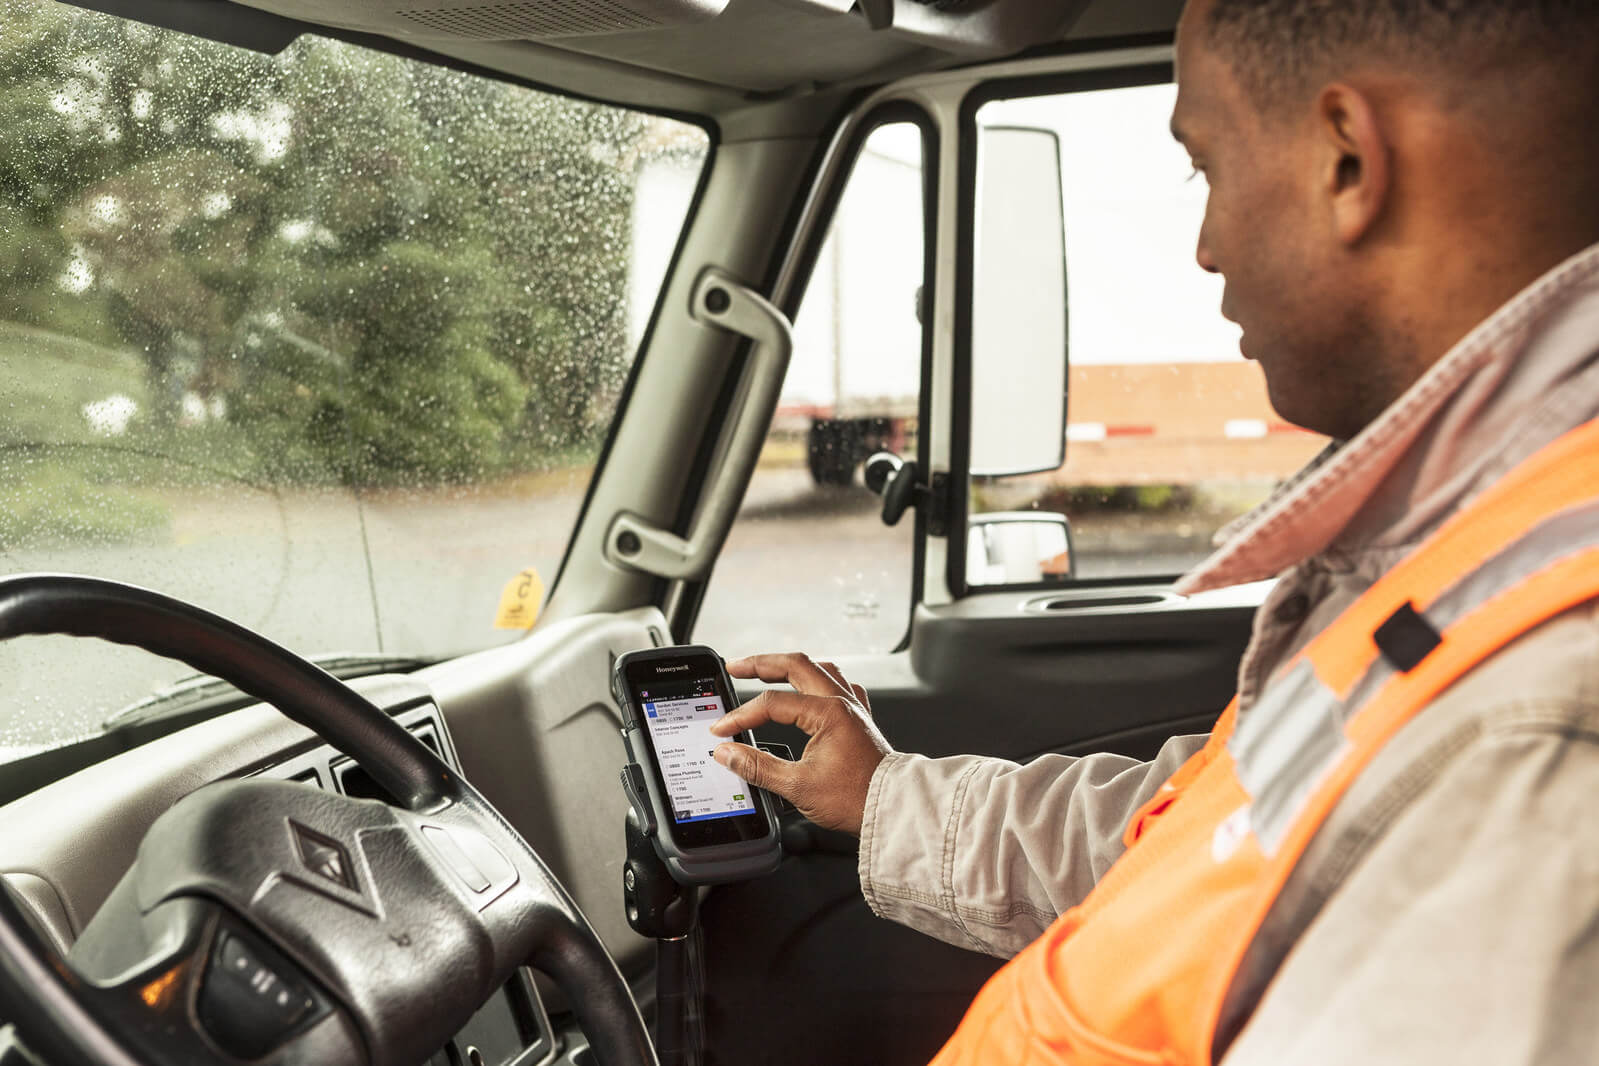 Honeywell's software for truck drivers runs on Android-based mobile